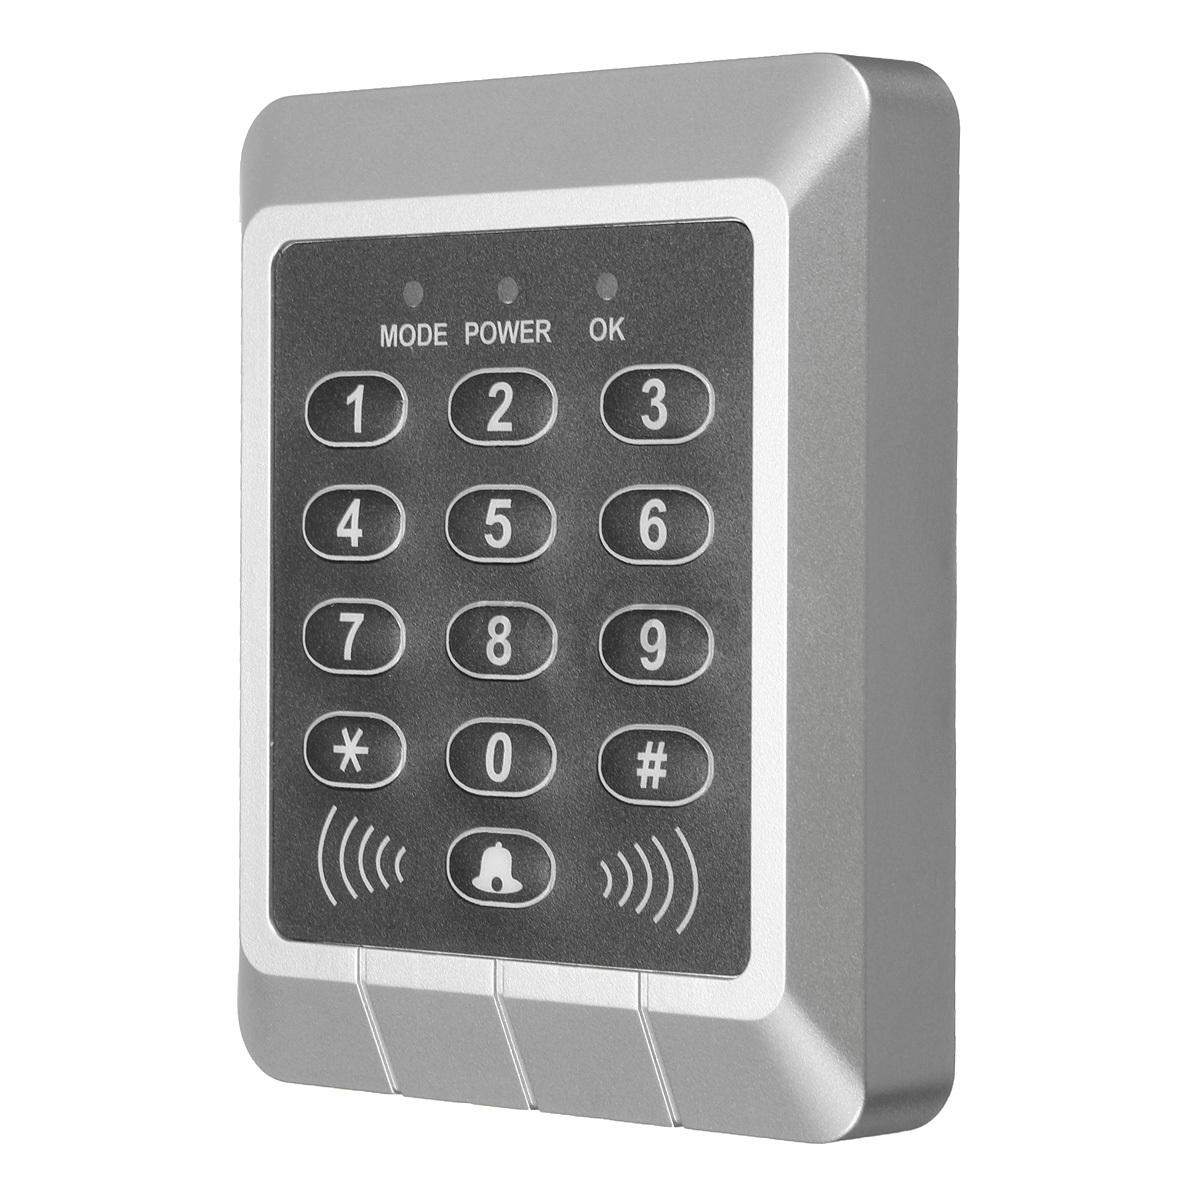 Rfid proximity entry door lock keypad access control for Door entry fobs